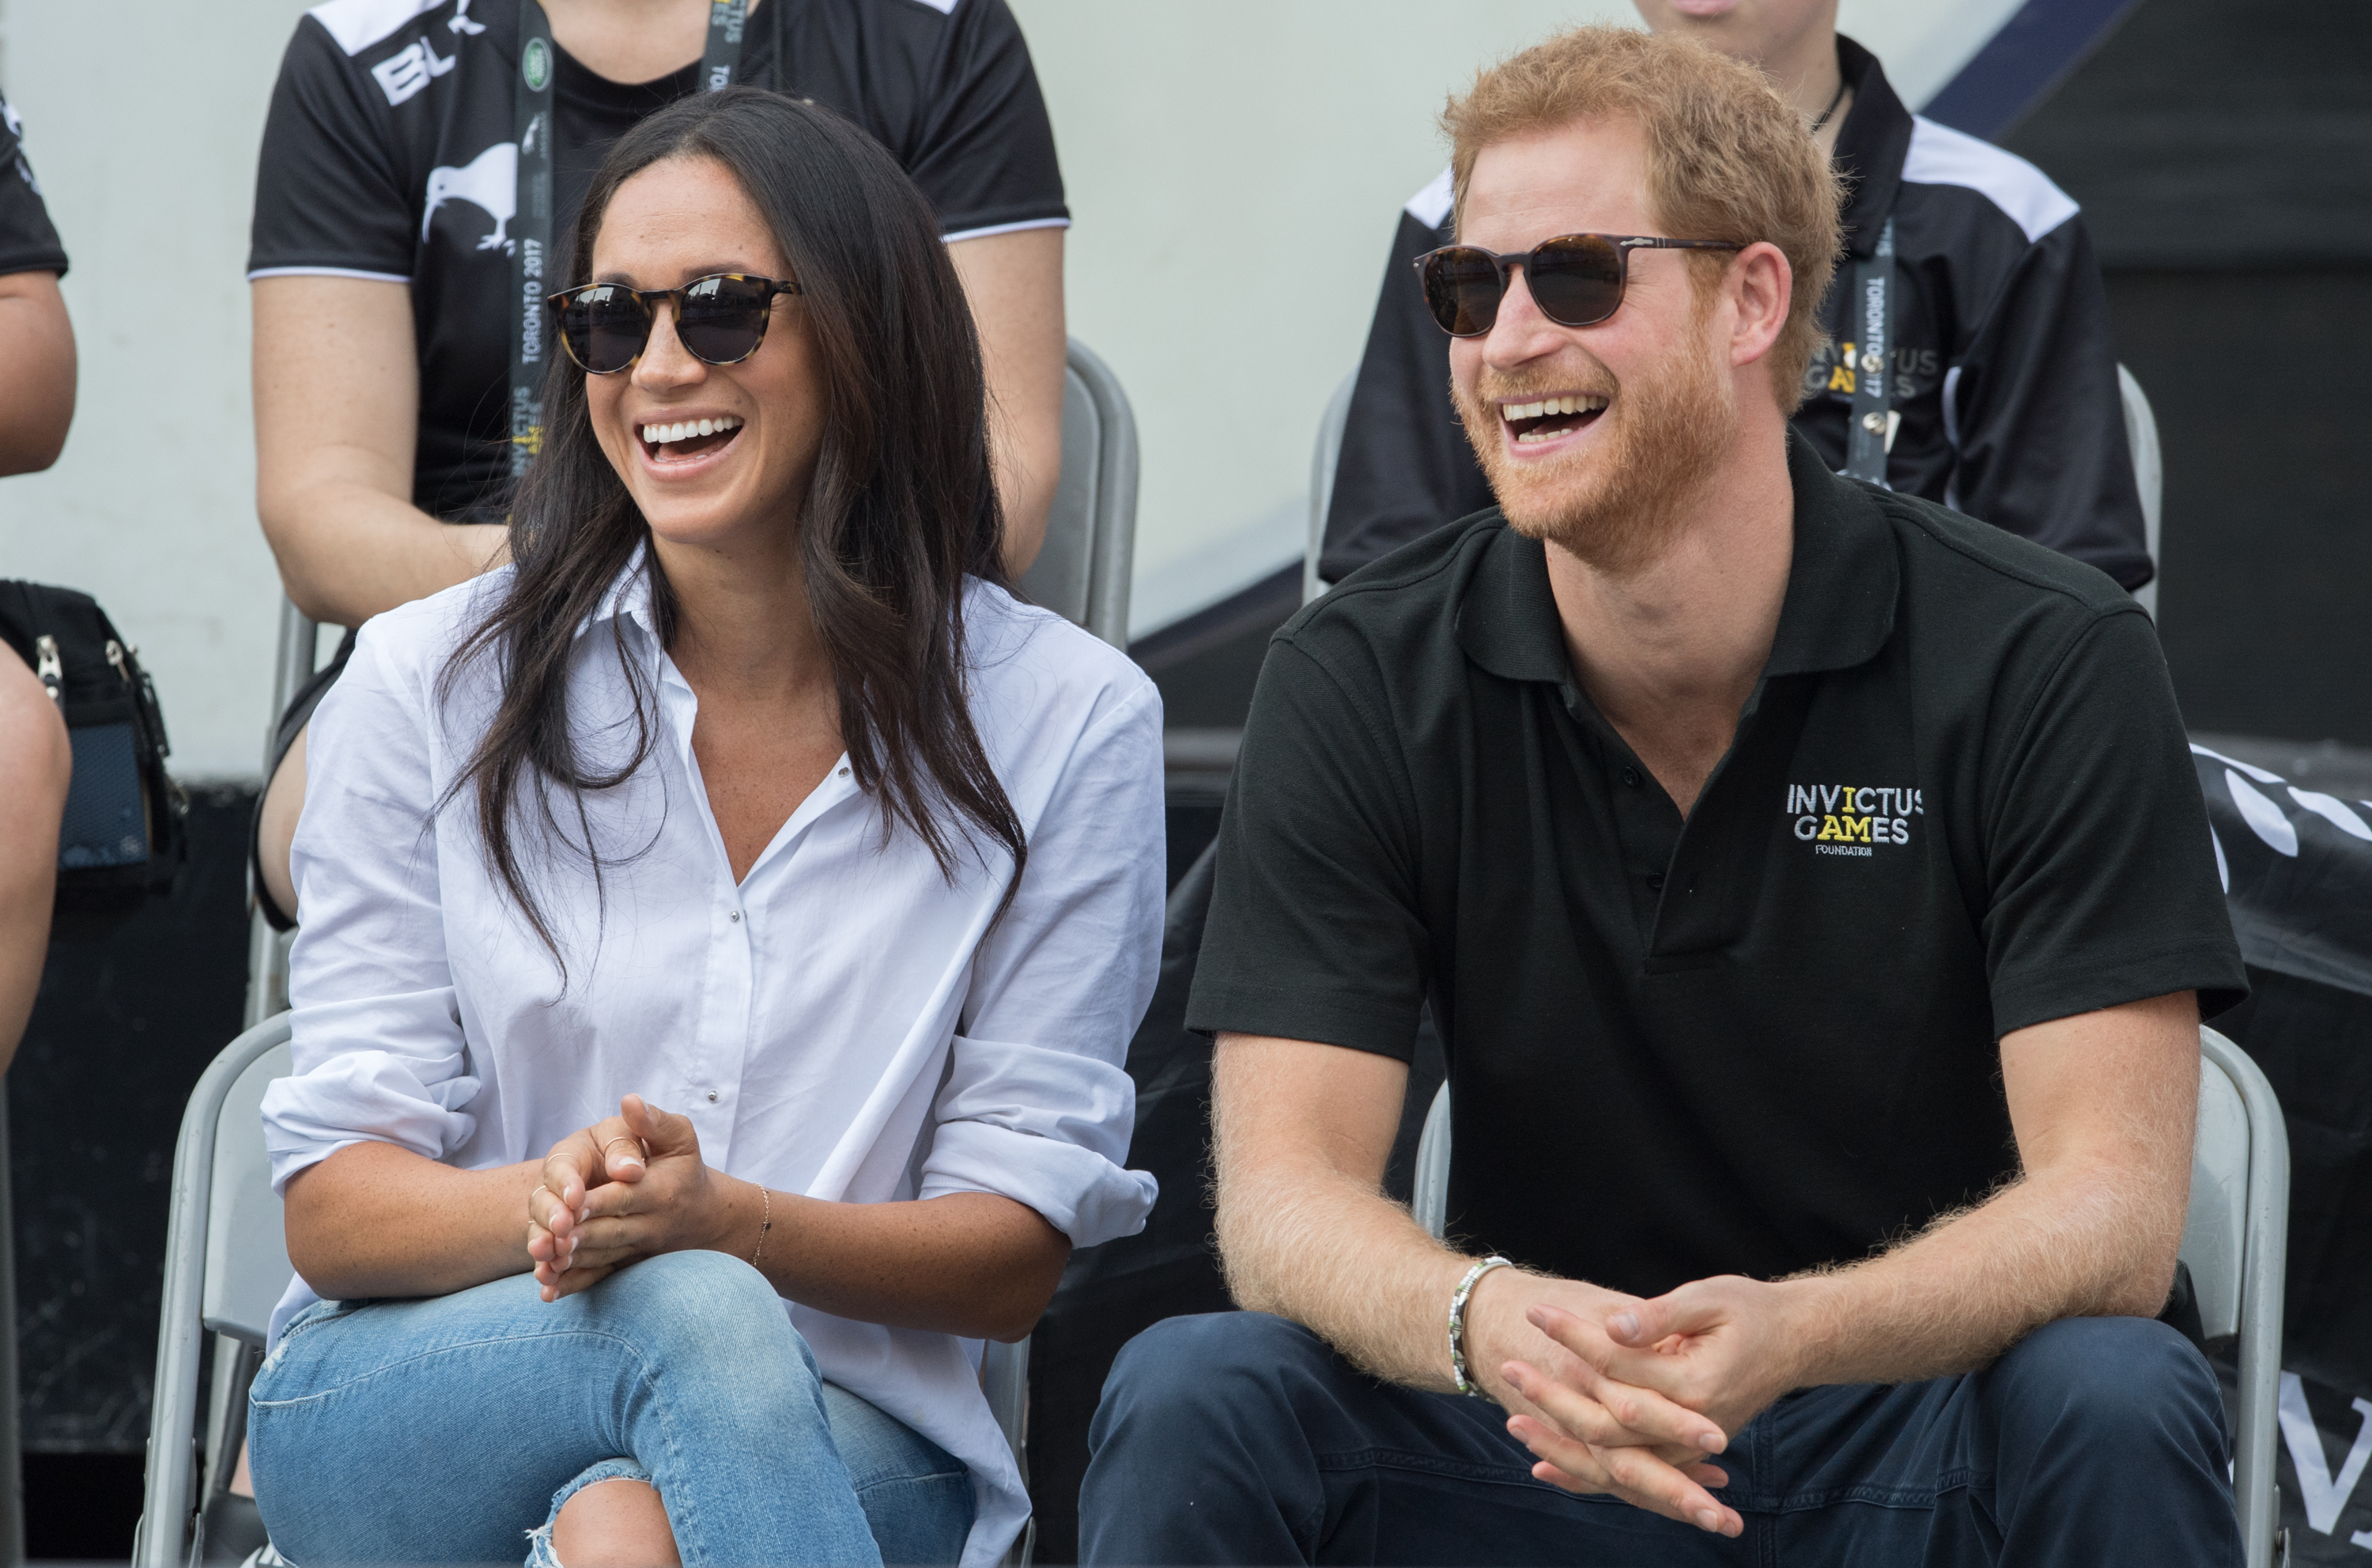 Meghan Markle and Prince Harry attend wheelchair tennis on day 3 of the Invictus Games Toronto 2017 on September 25, 2017 in Toronto, Canada.